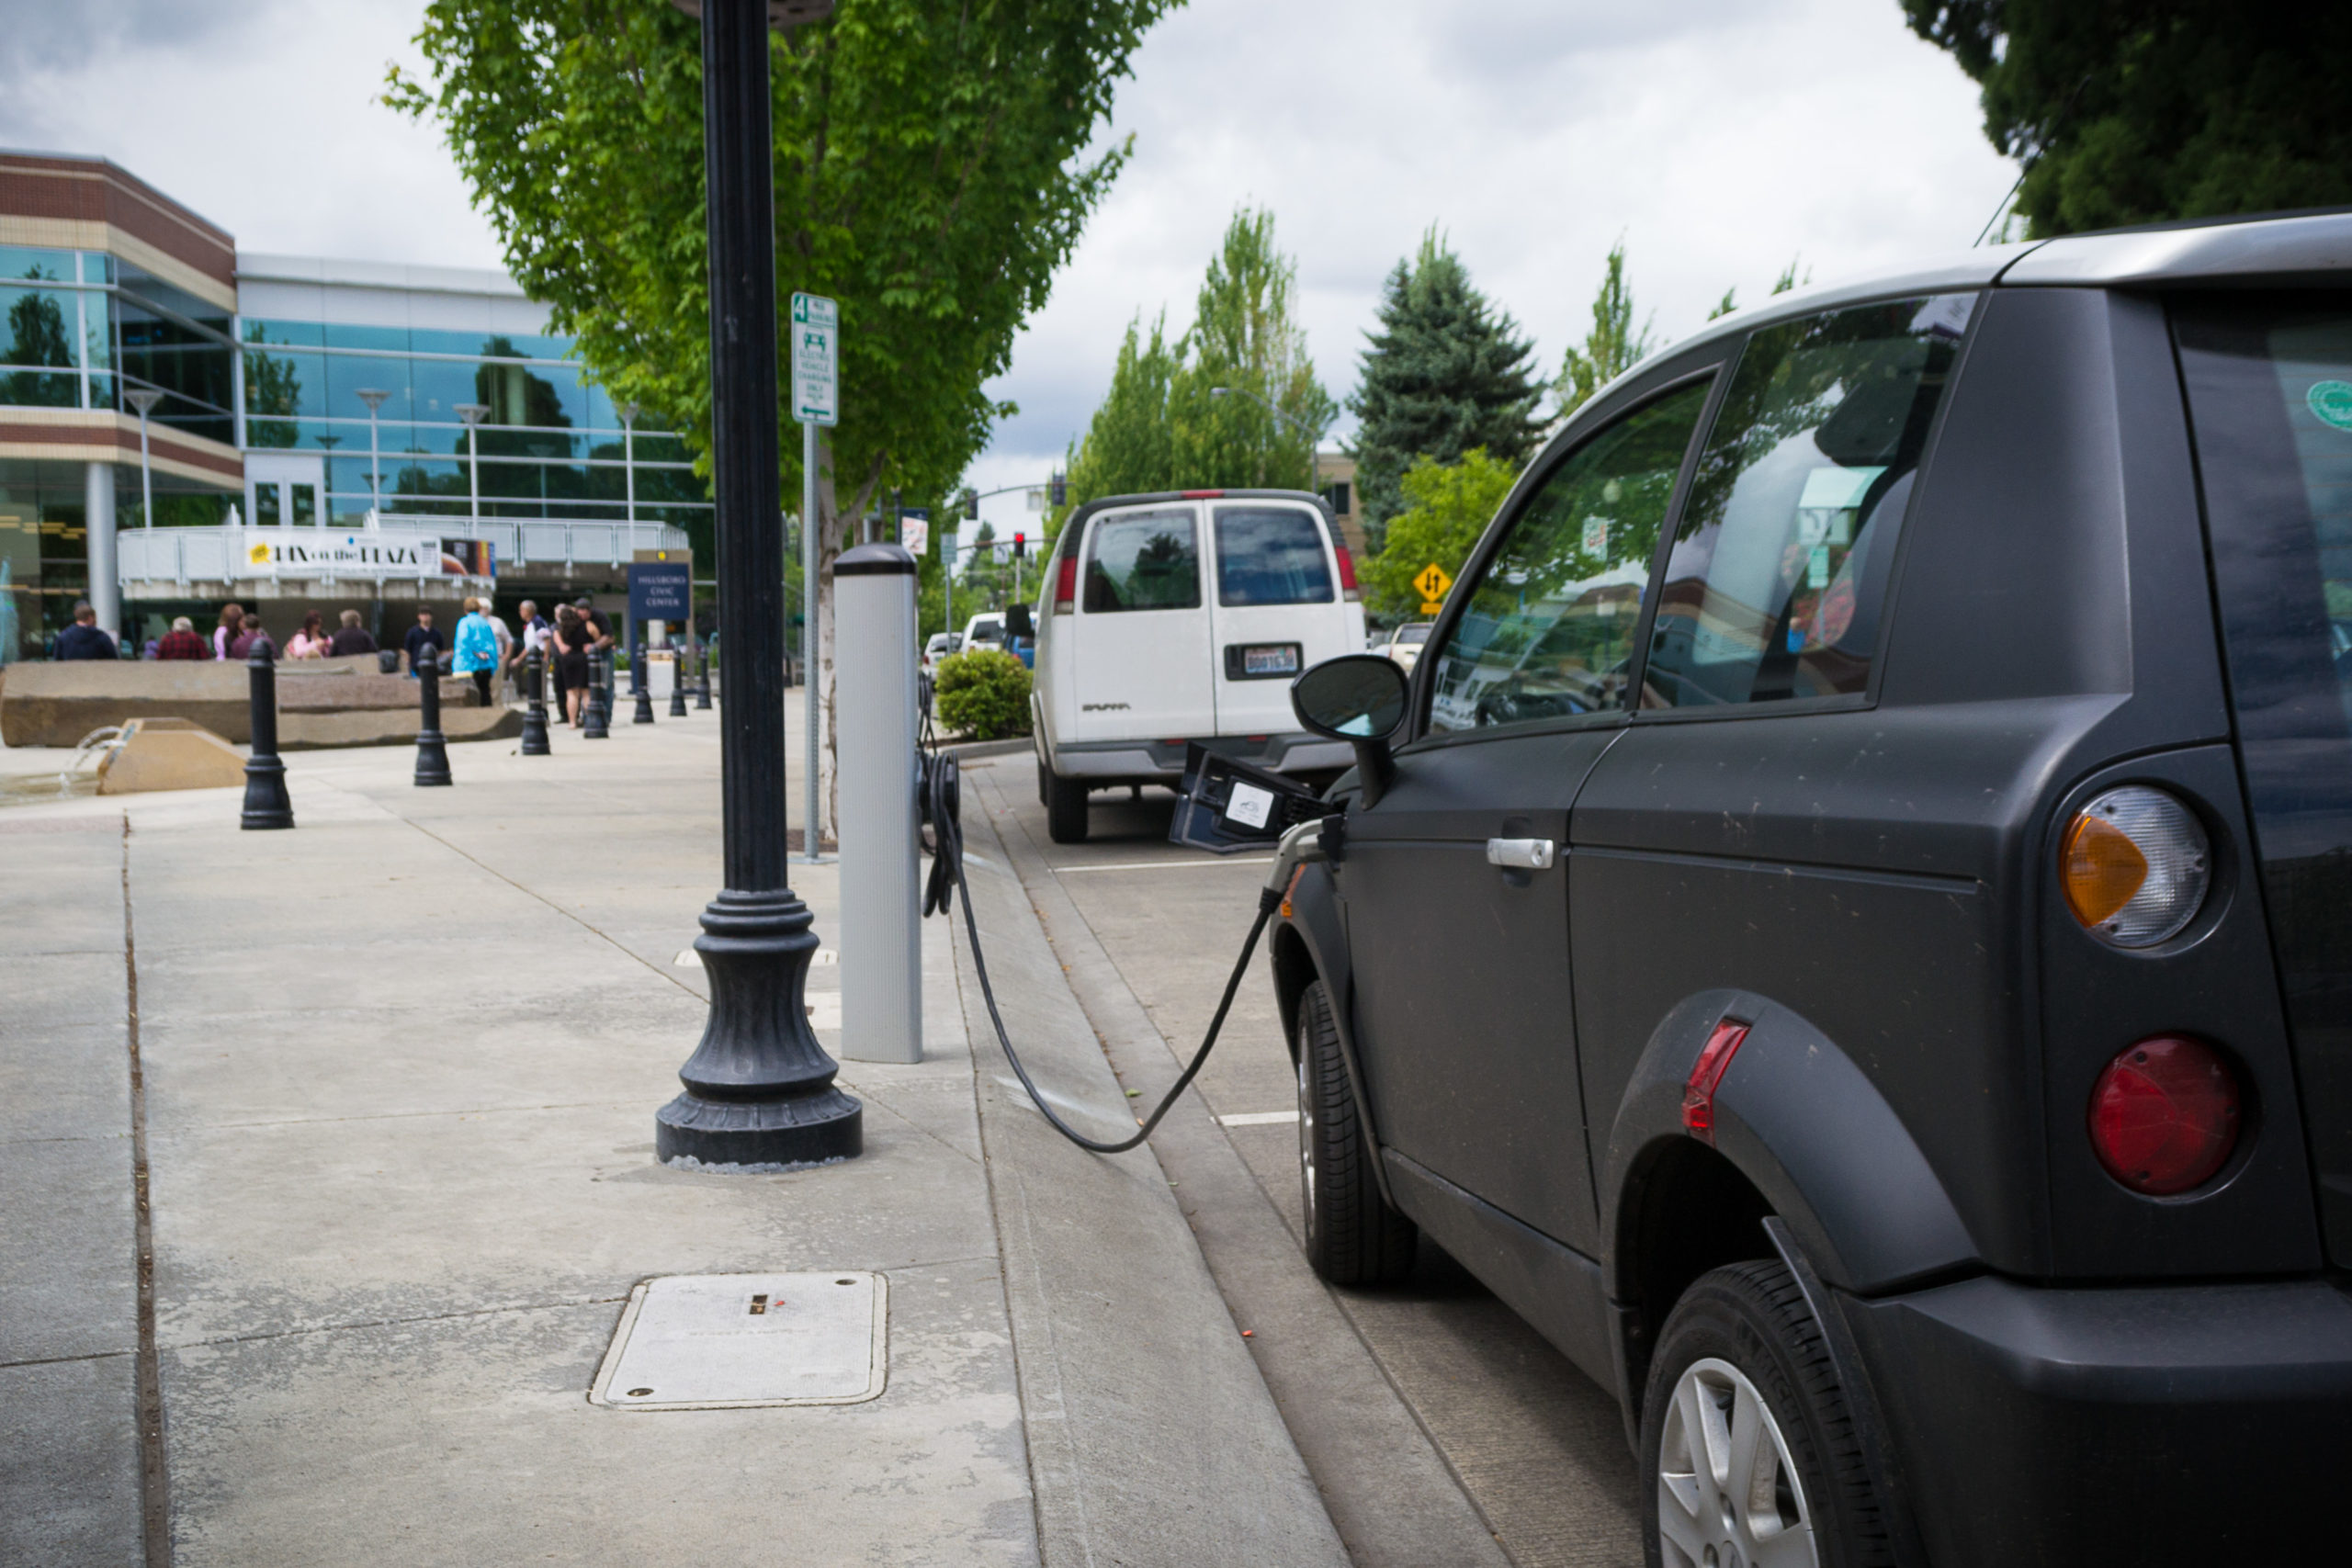 Europe and North America to connect 7.9 million EV chargers by 2025